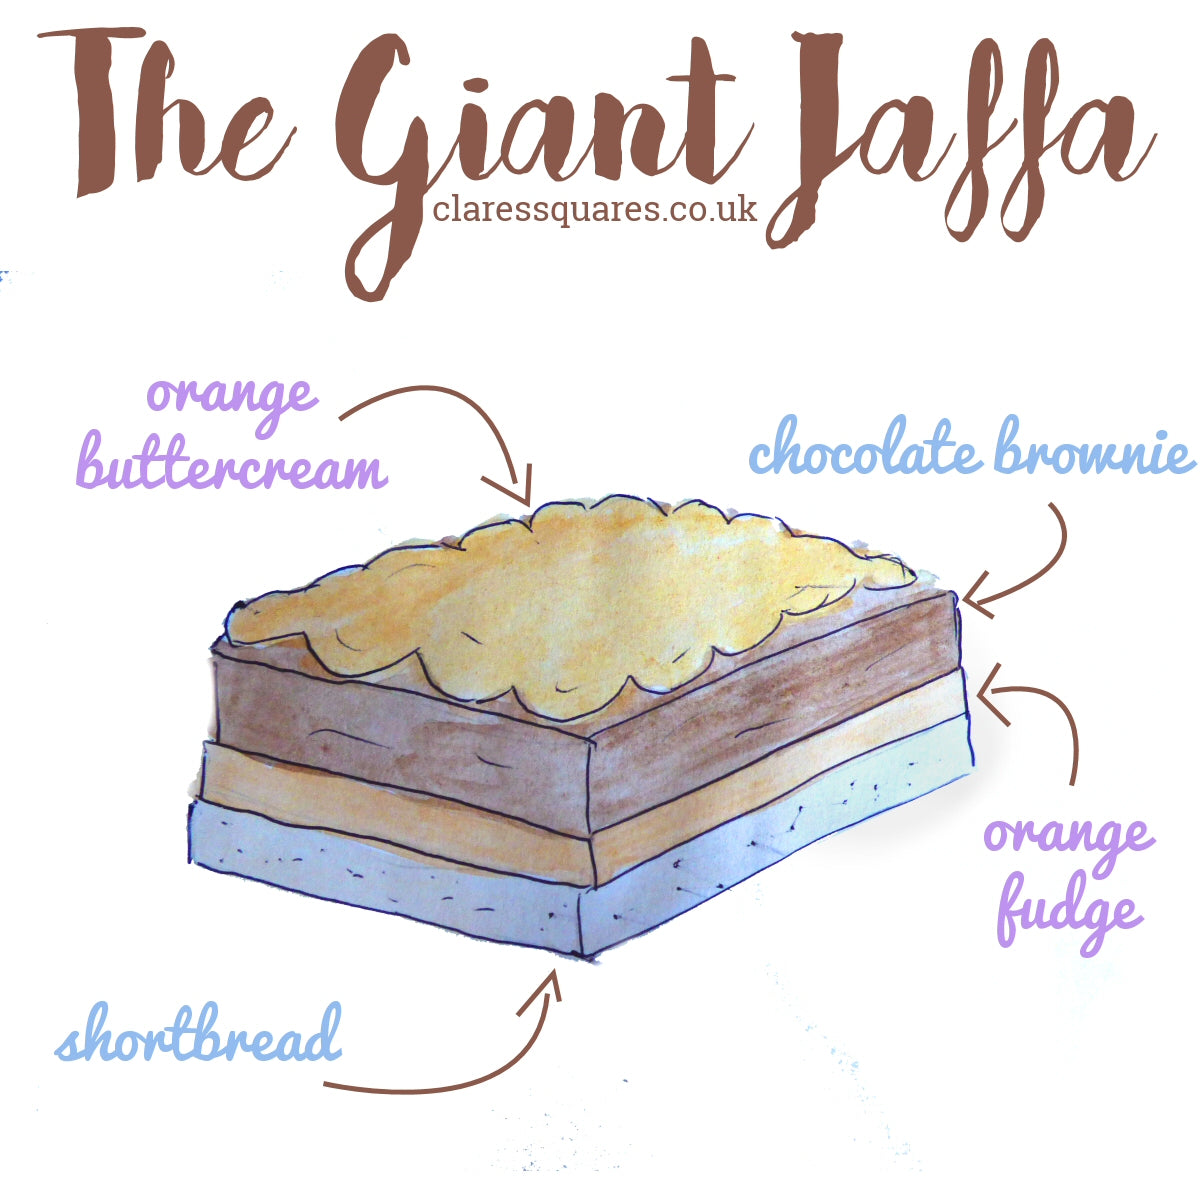 Giant Jaffa Traybake Cake - Clare's Squares - order  online with free delivery to your door